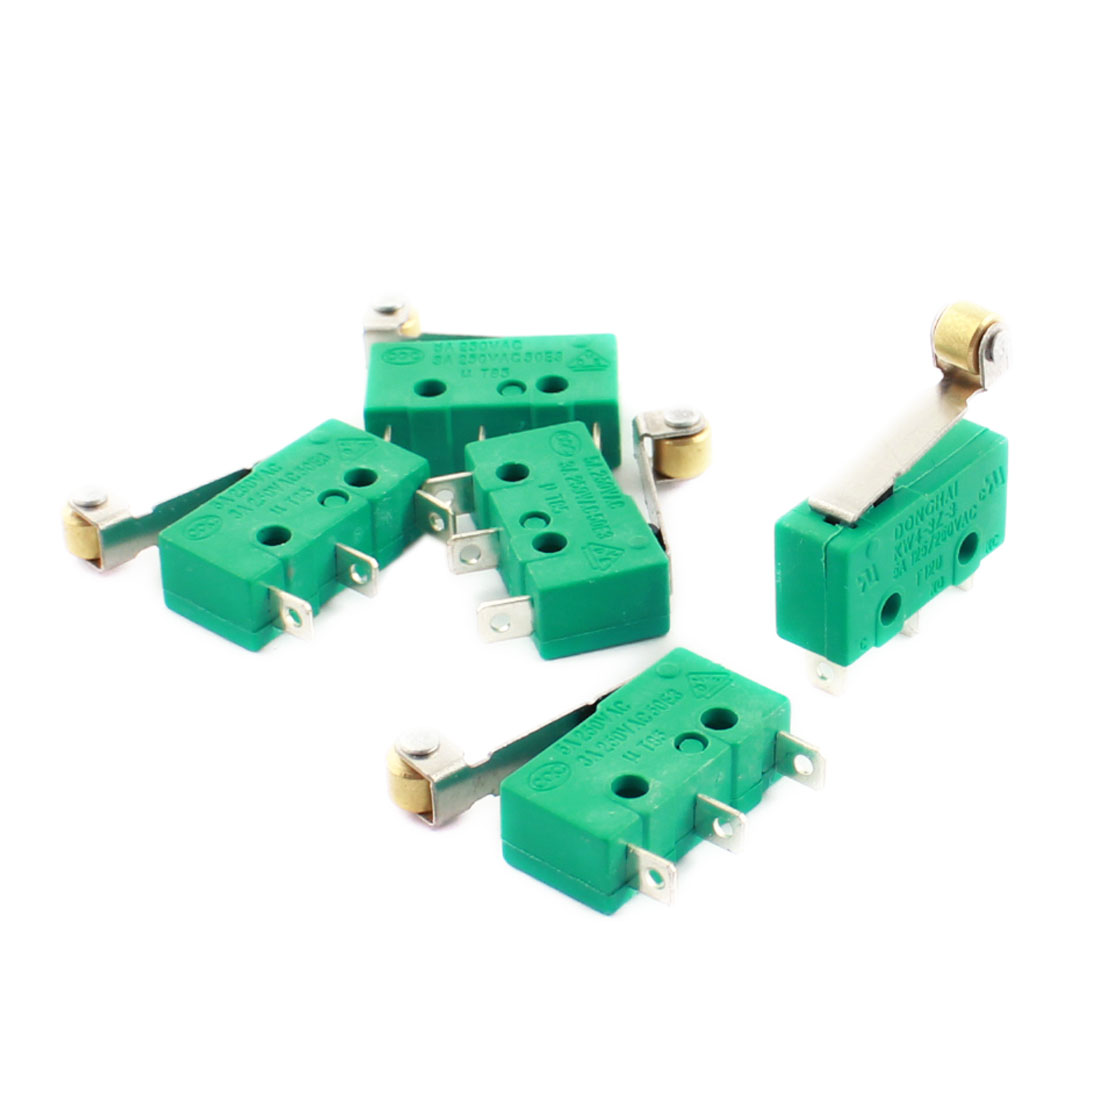 5 Pcs KW4-3Z-3 Micro Limit Switch Short Roller Lever Subminiature SPDT Snap Action LOT